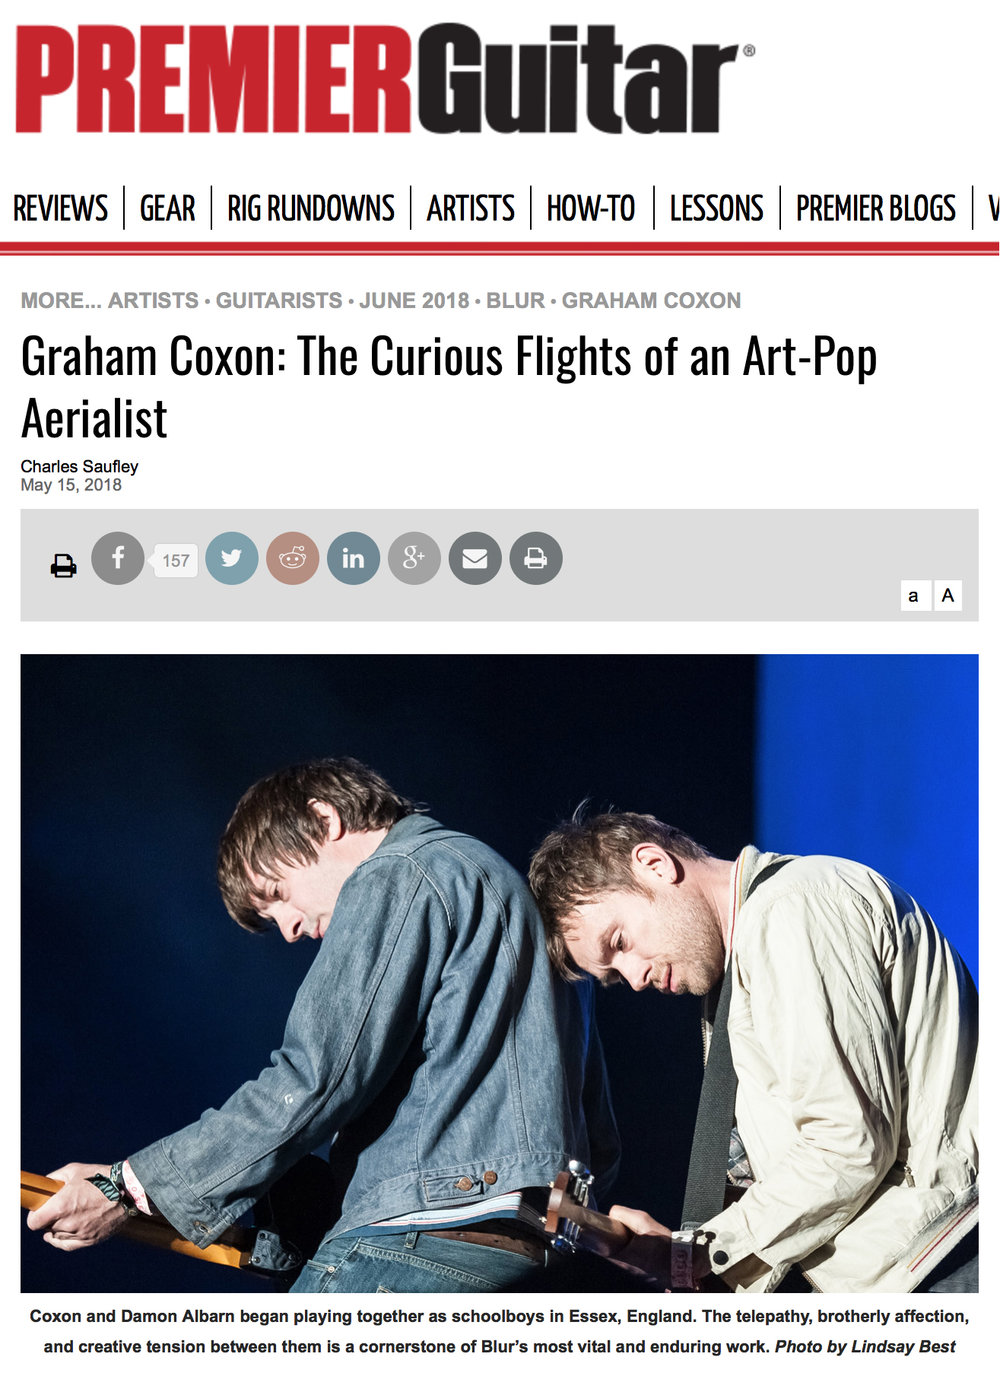 lindsey best music photography graham coxon damon albarn blur